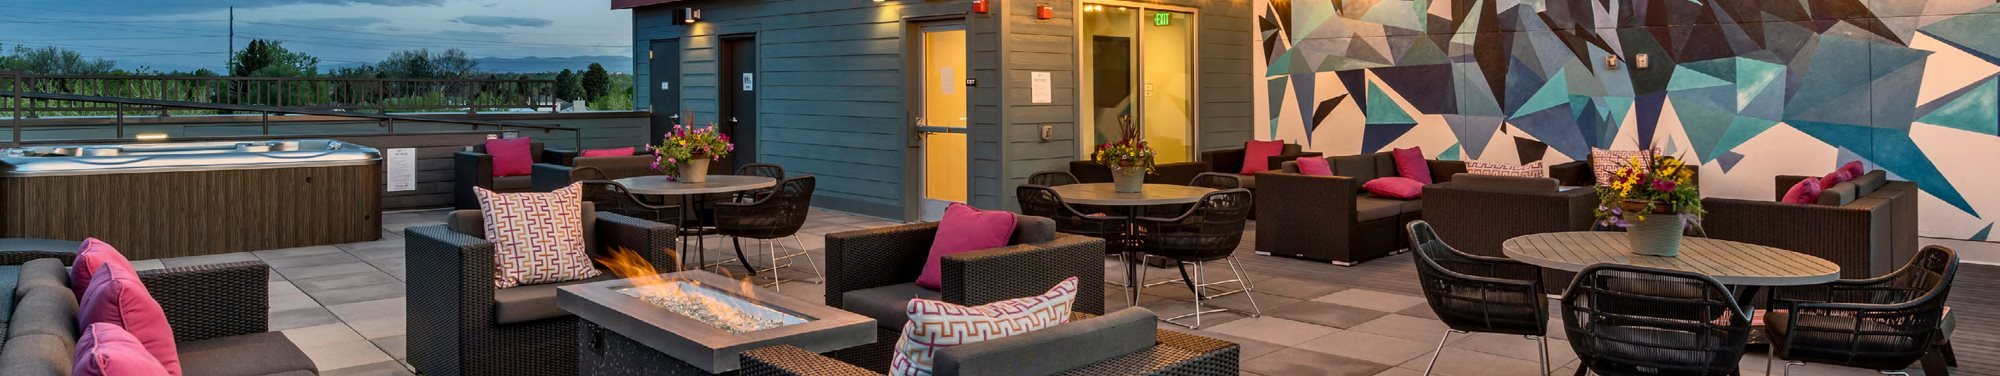 Rooftop Lounge at West Line Flats Apartments in Lakewood, CO